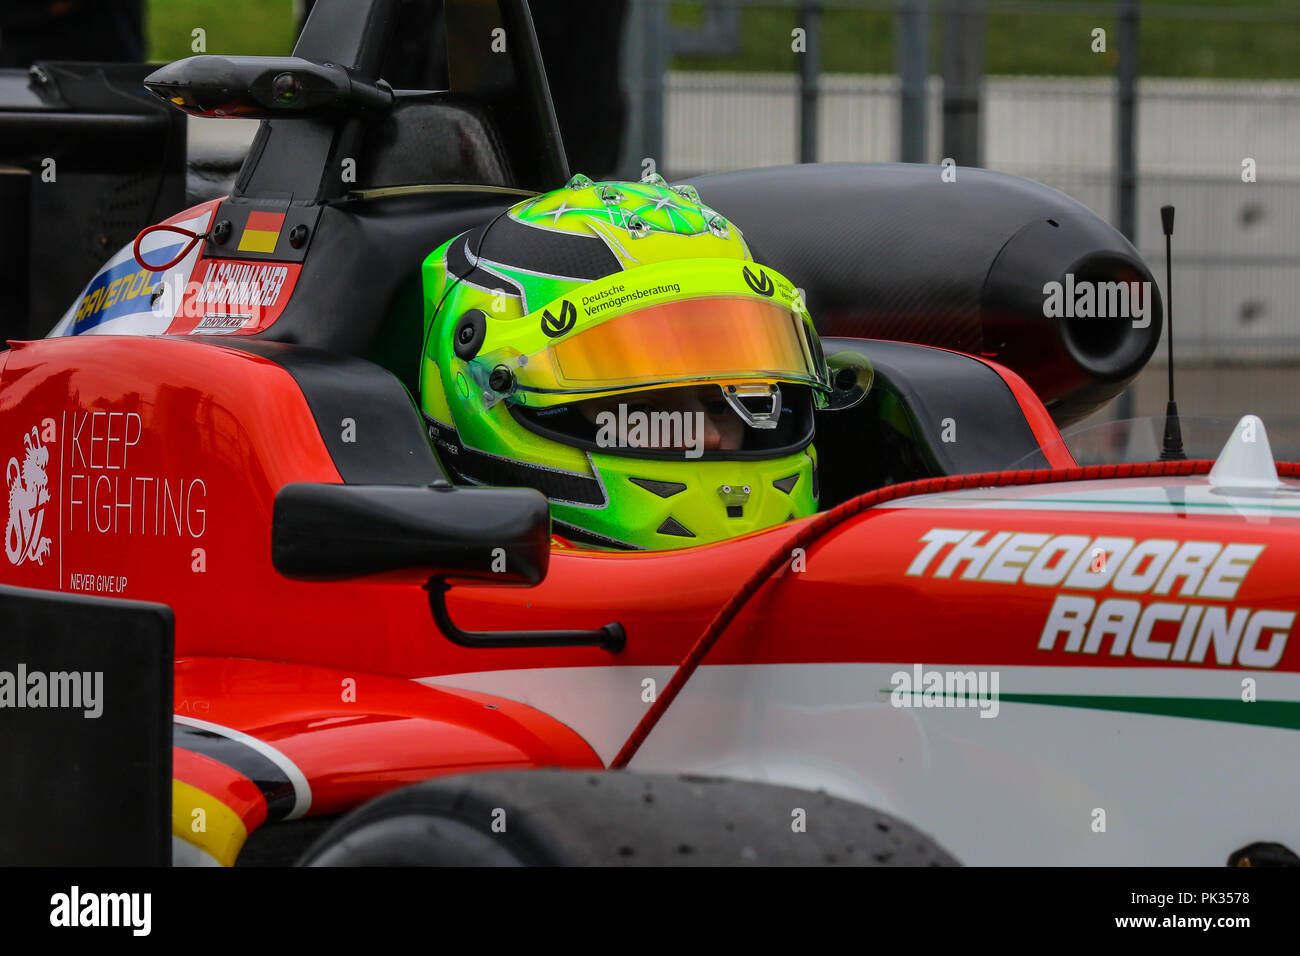 Mick Schumacher, son of seven-time Formula 1 Champion Michael, in the FIA Formula 3 European Championship, driving for Prema Powerteam. - Stock Image